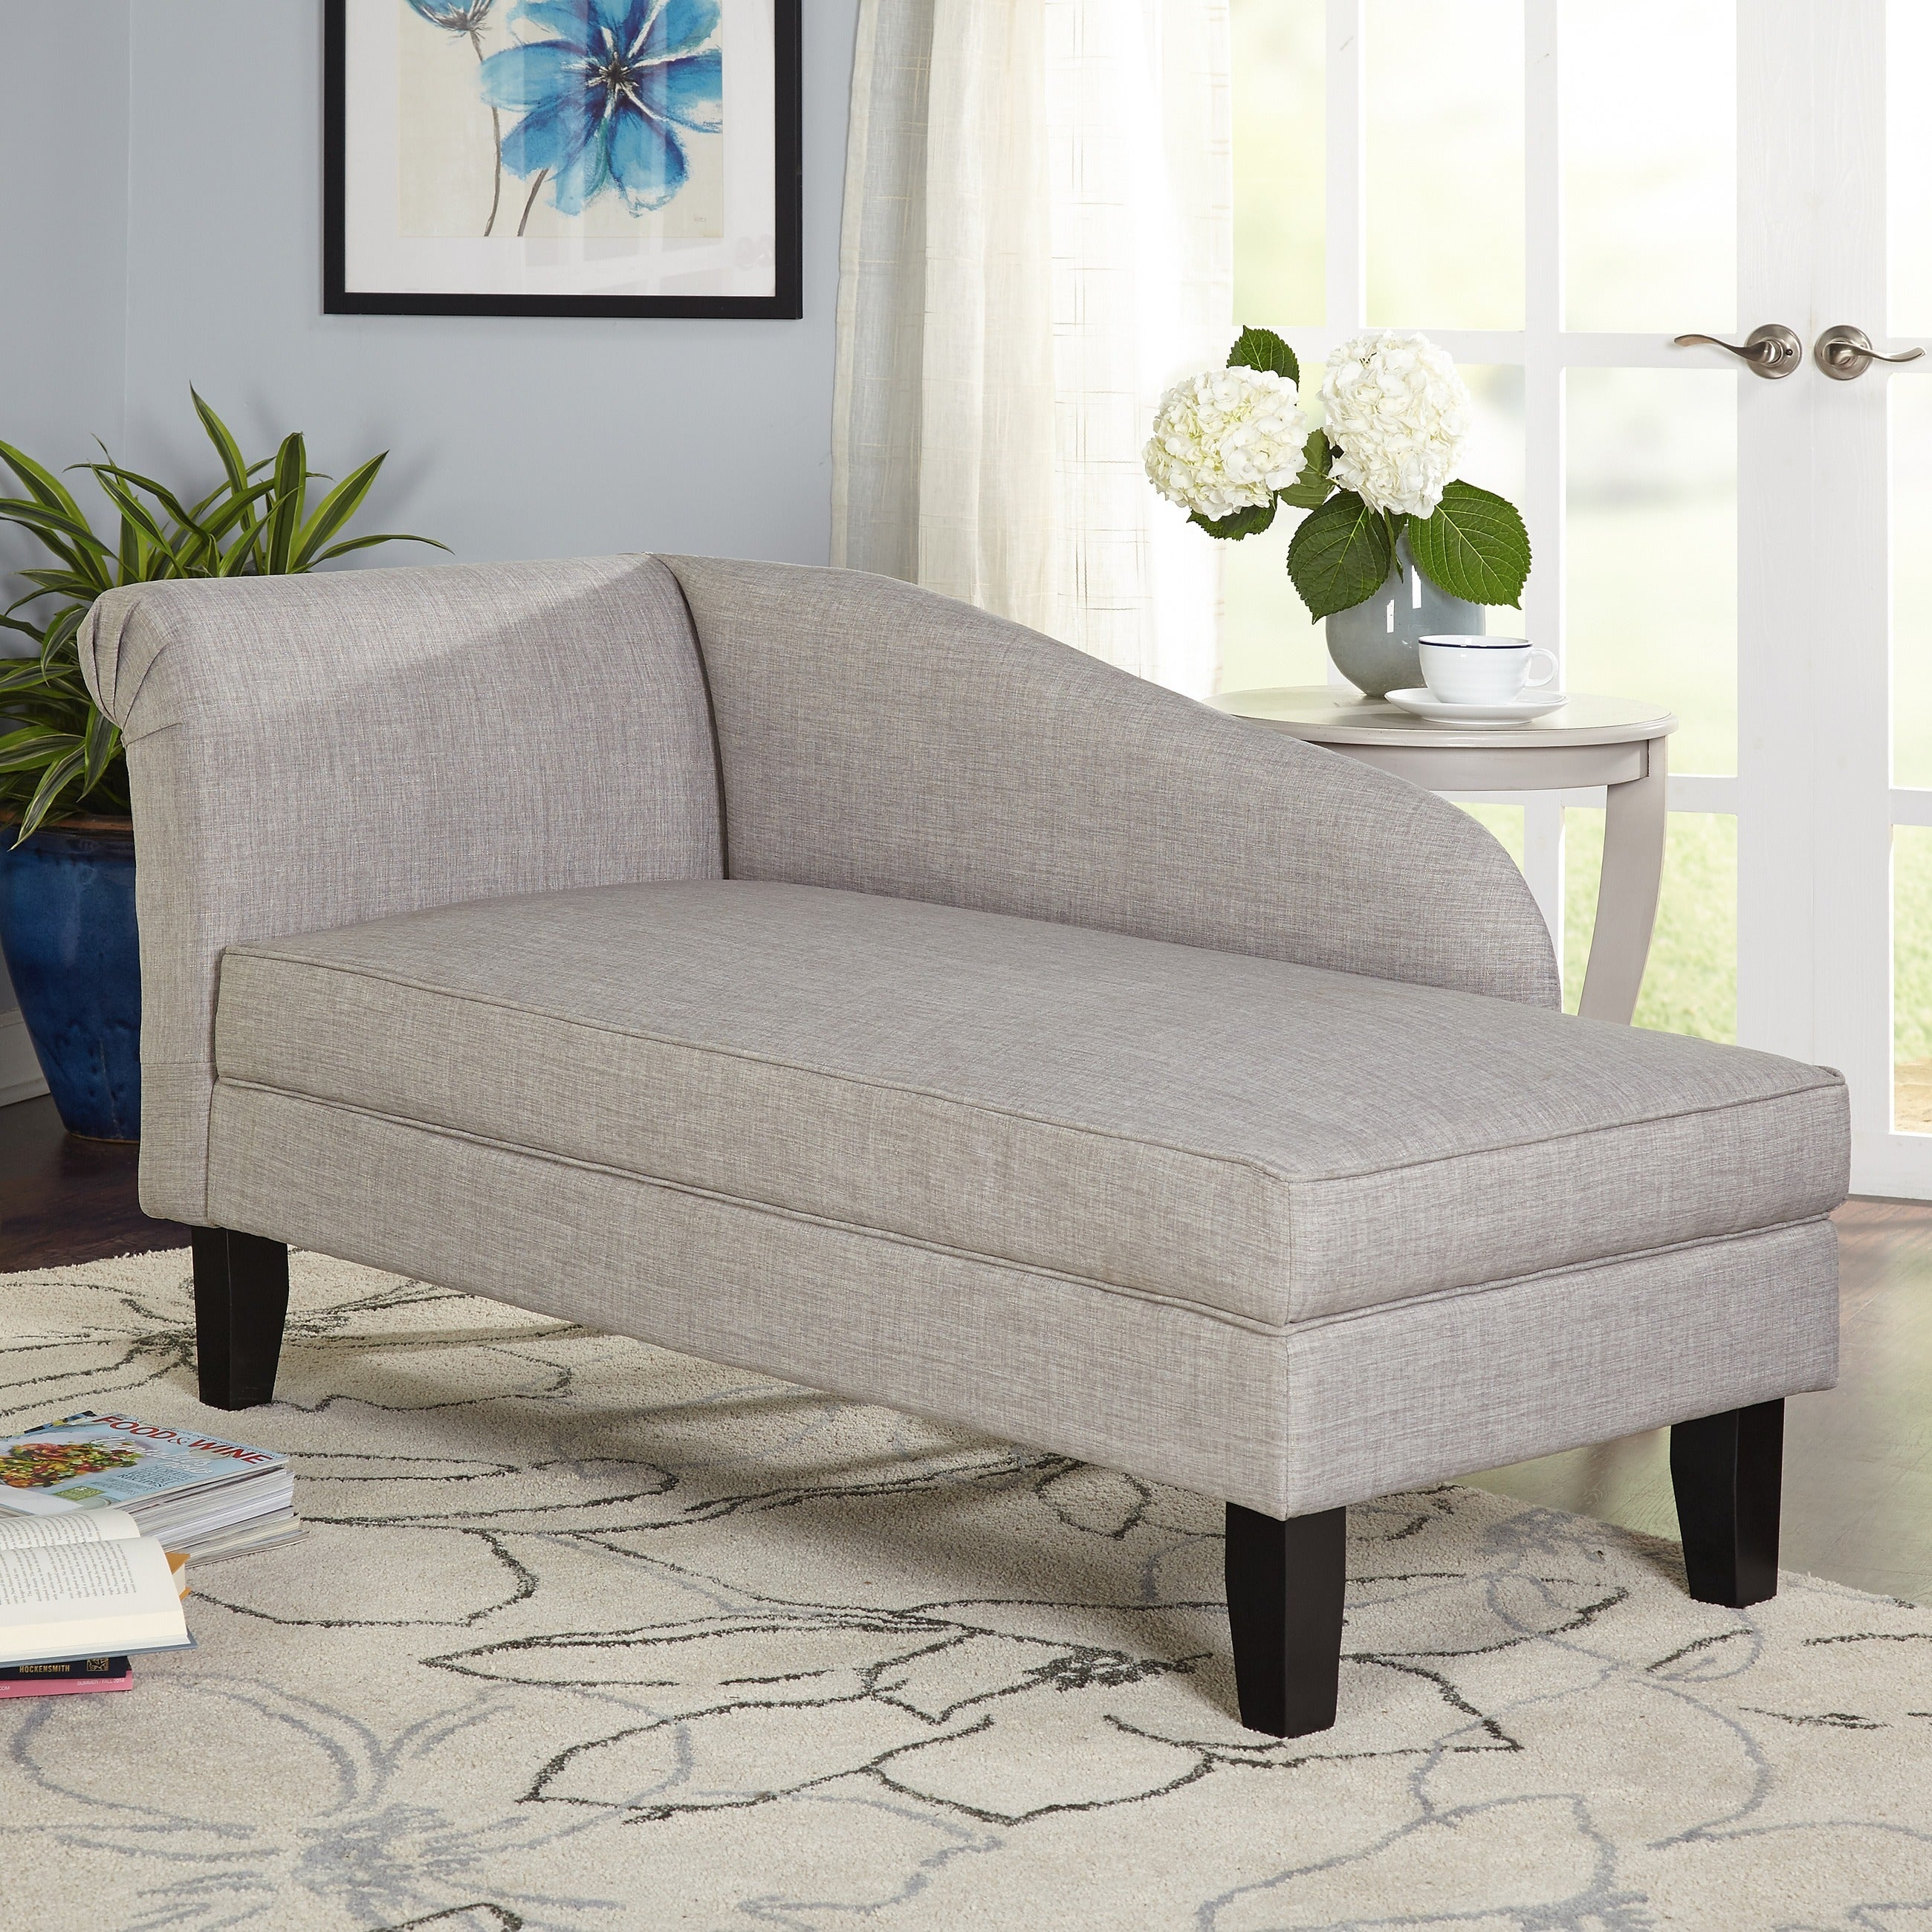 - Shop Simple Living Chaise Lounge With Storage Compartment - On